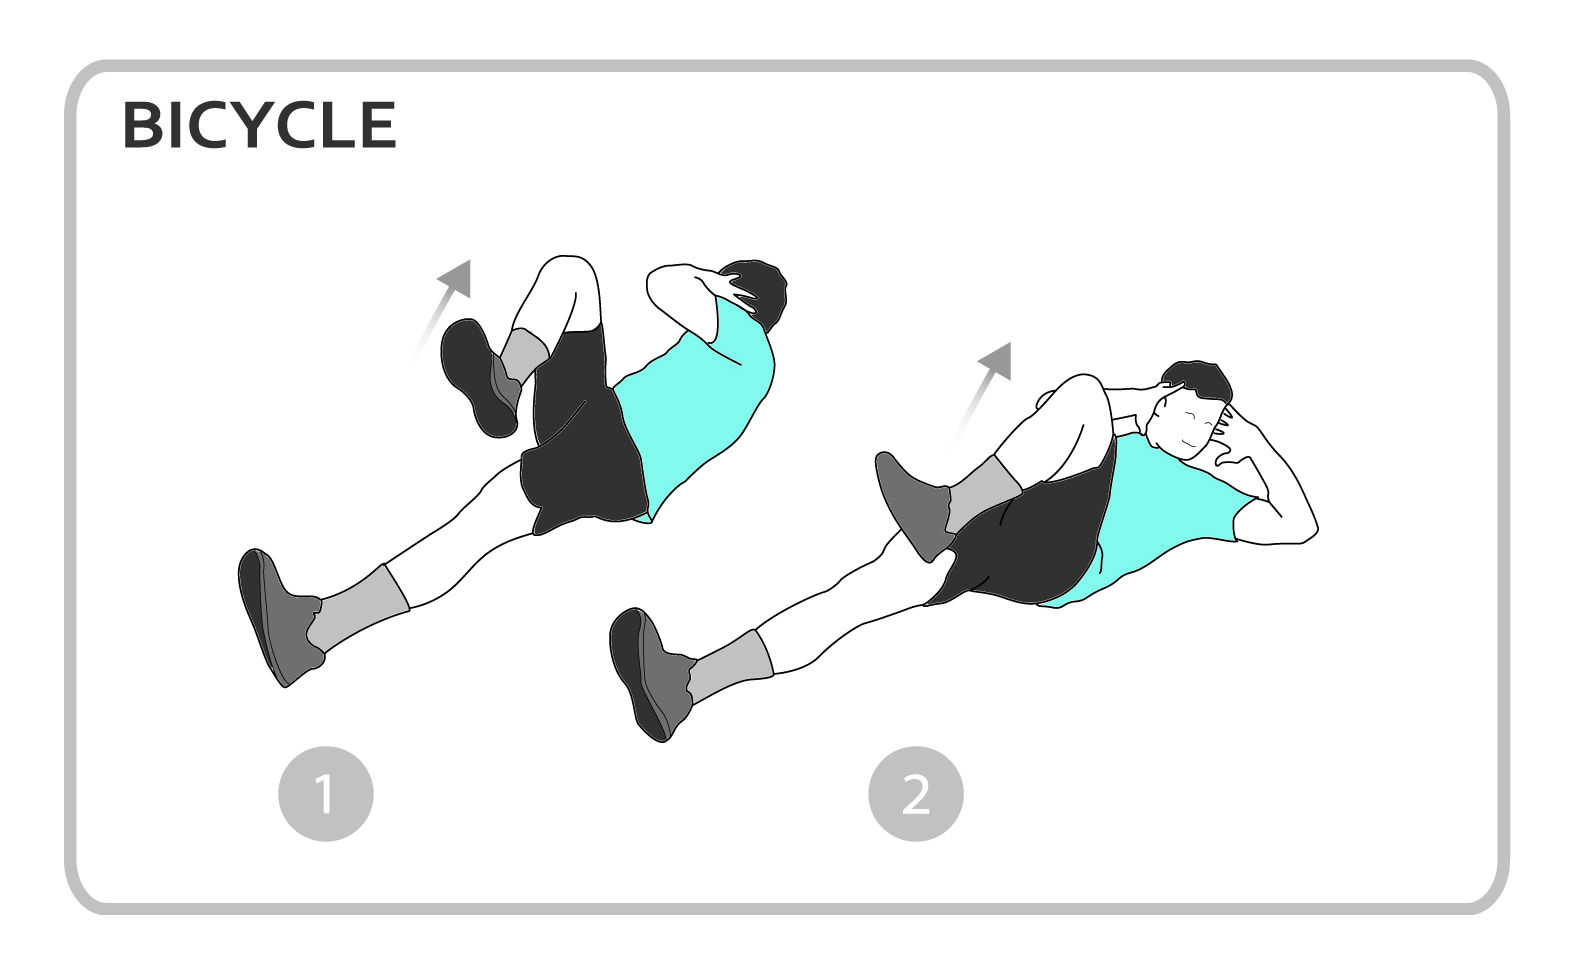 Bicycle Exercise Diagram Core Abs Personal Fitness Workout